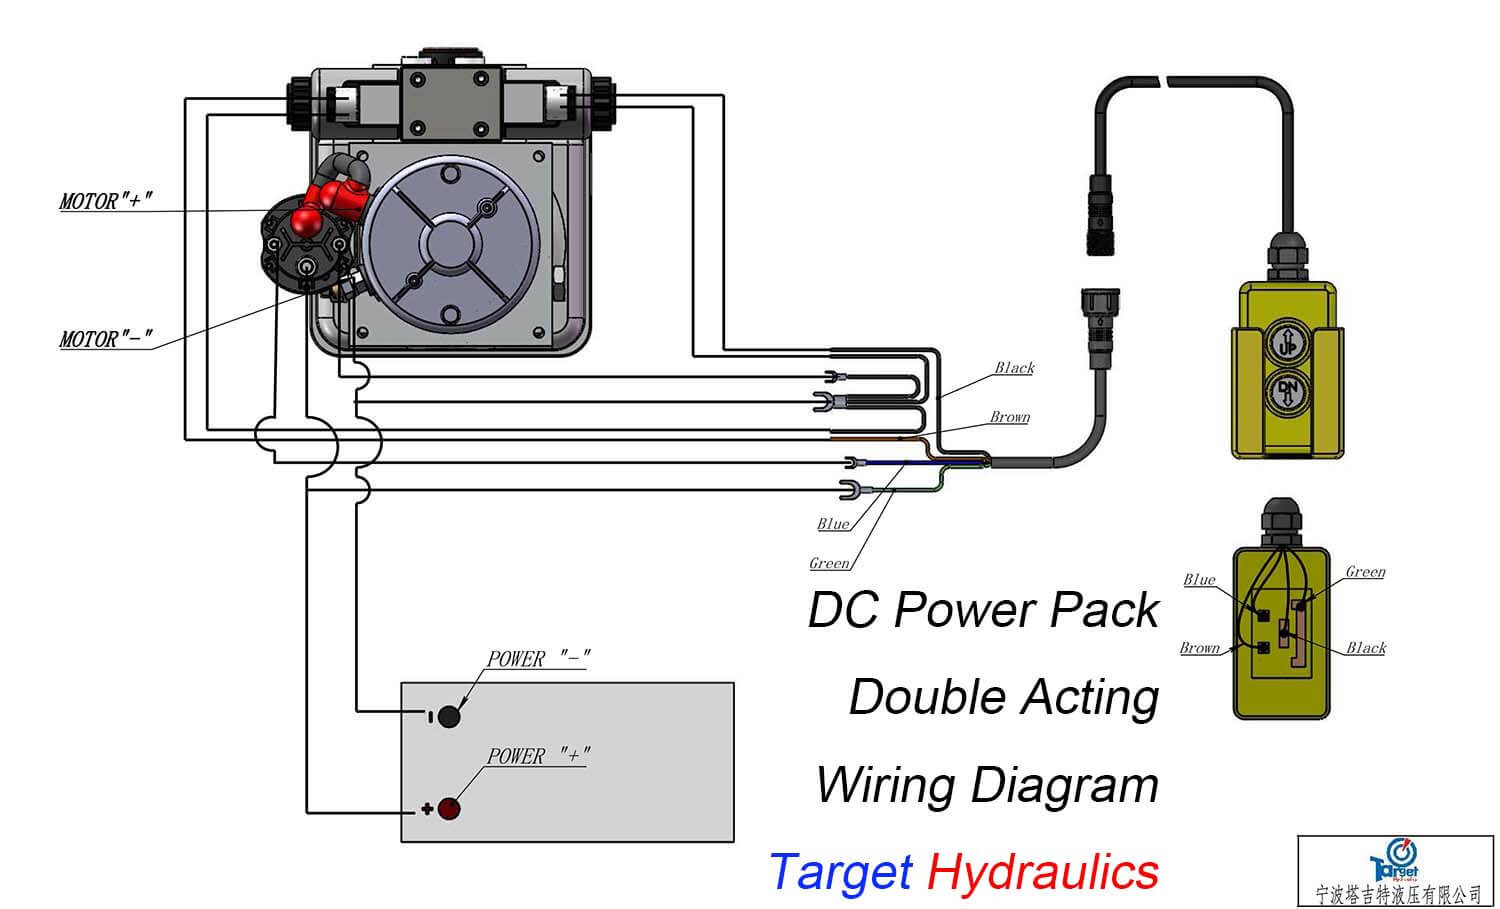 hight resolution of how to wire dc motor double acting power pack